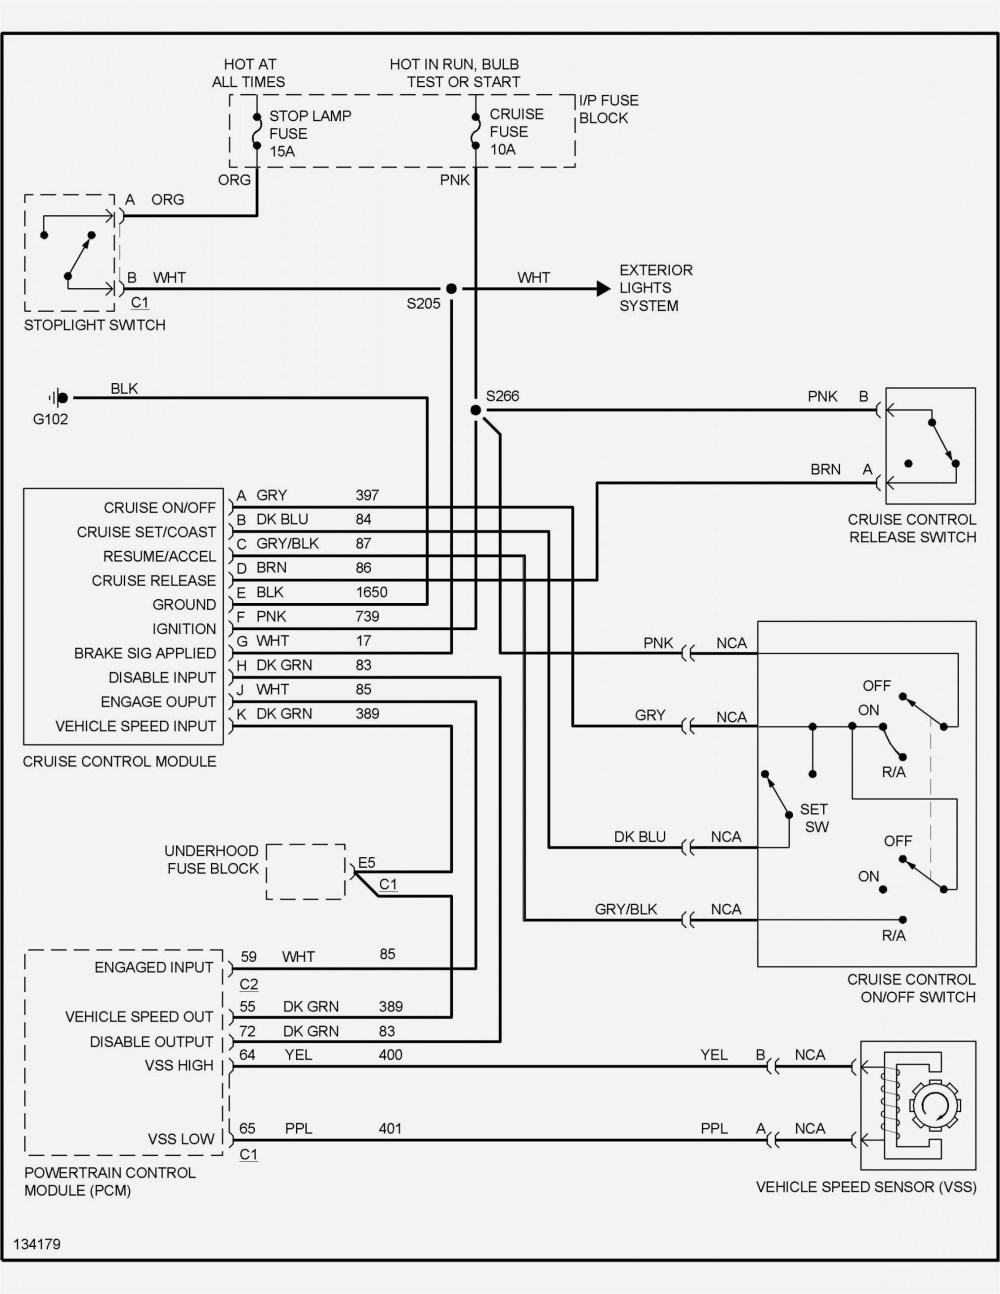 medium resolution of sony cdx m620 wiring diagram wiring diagrams coresony cdx m620 wiring diagram wiring diagram g9 sony